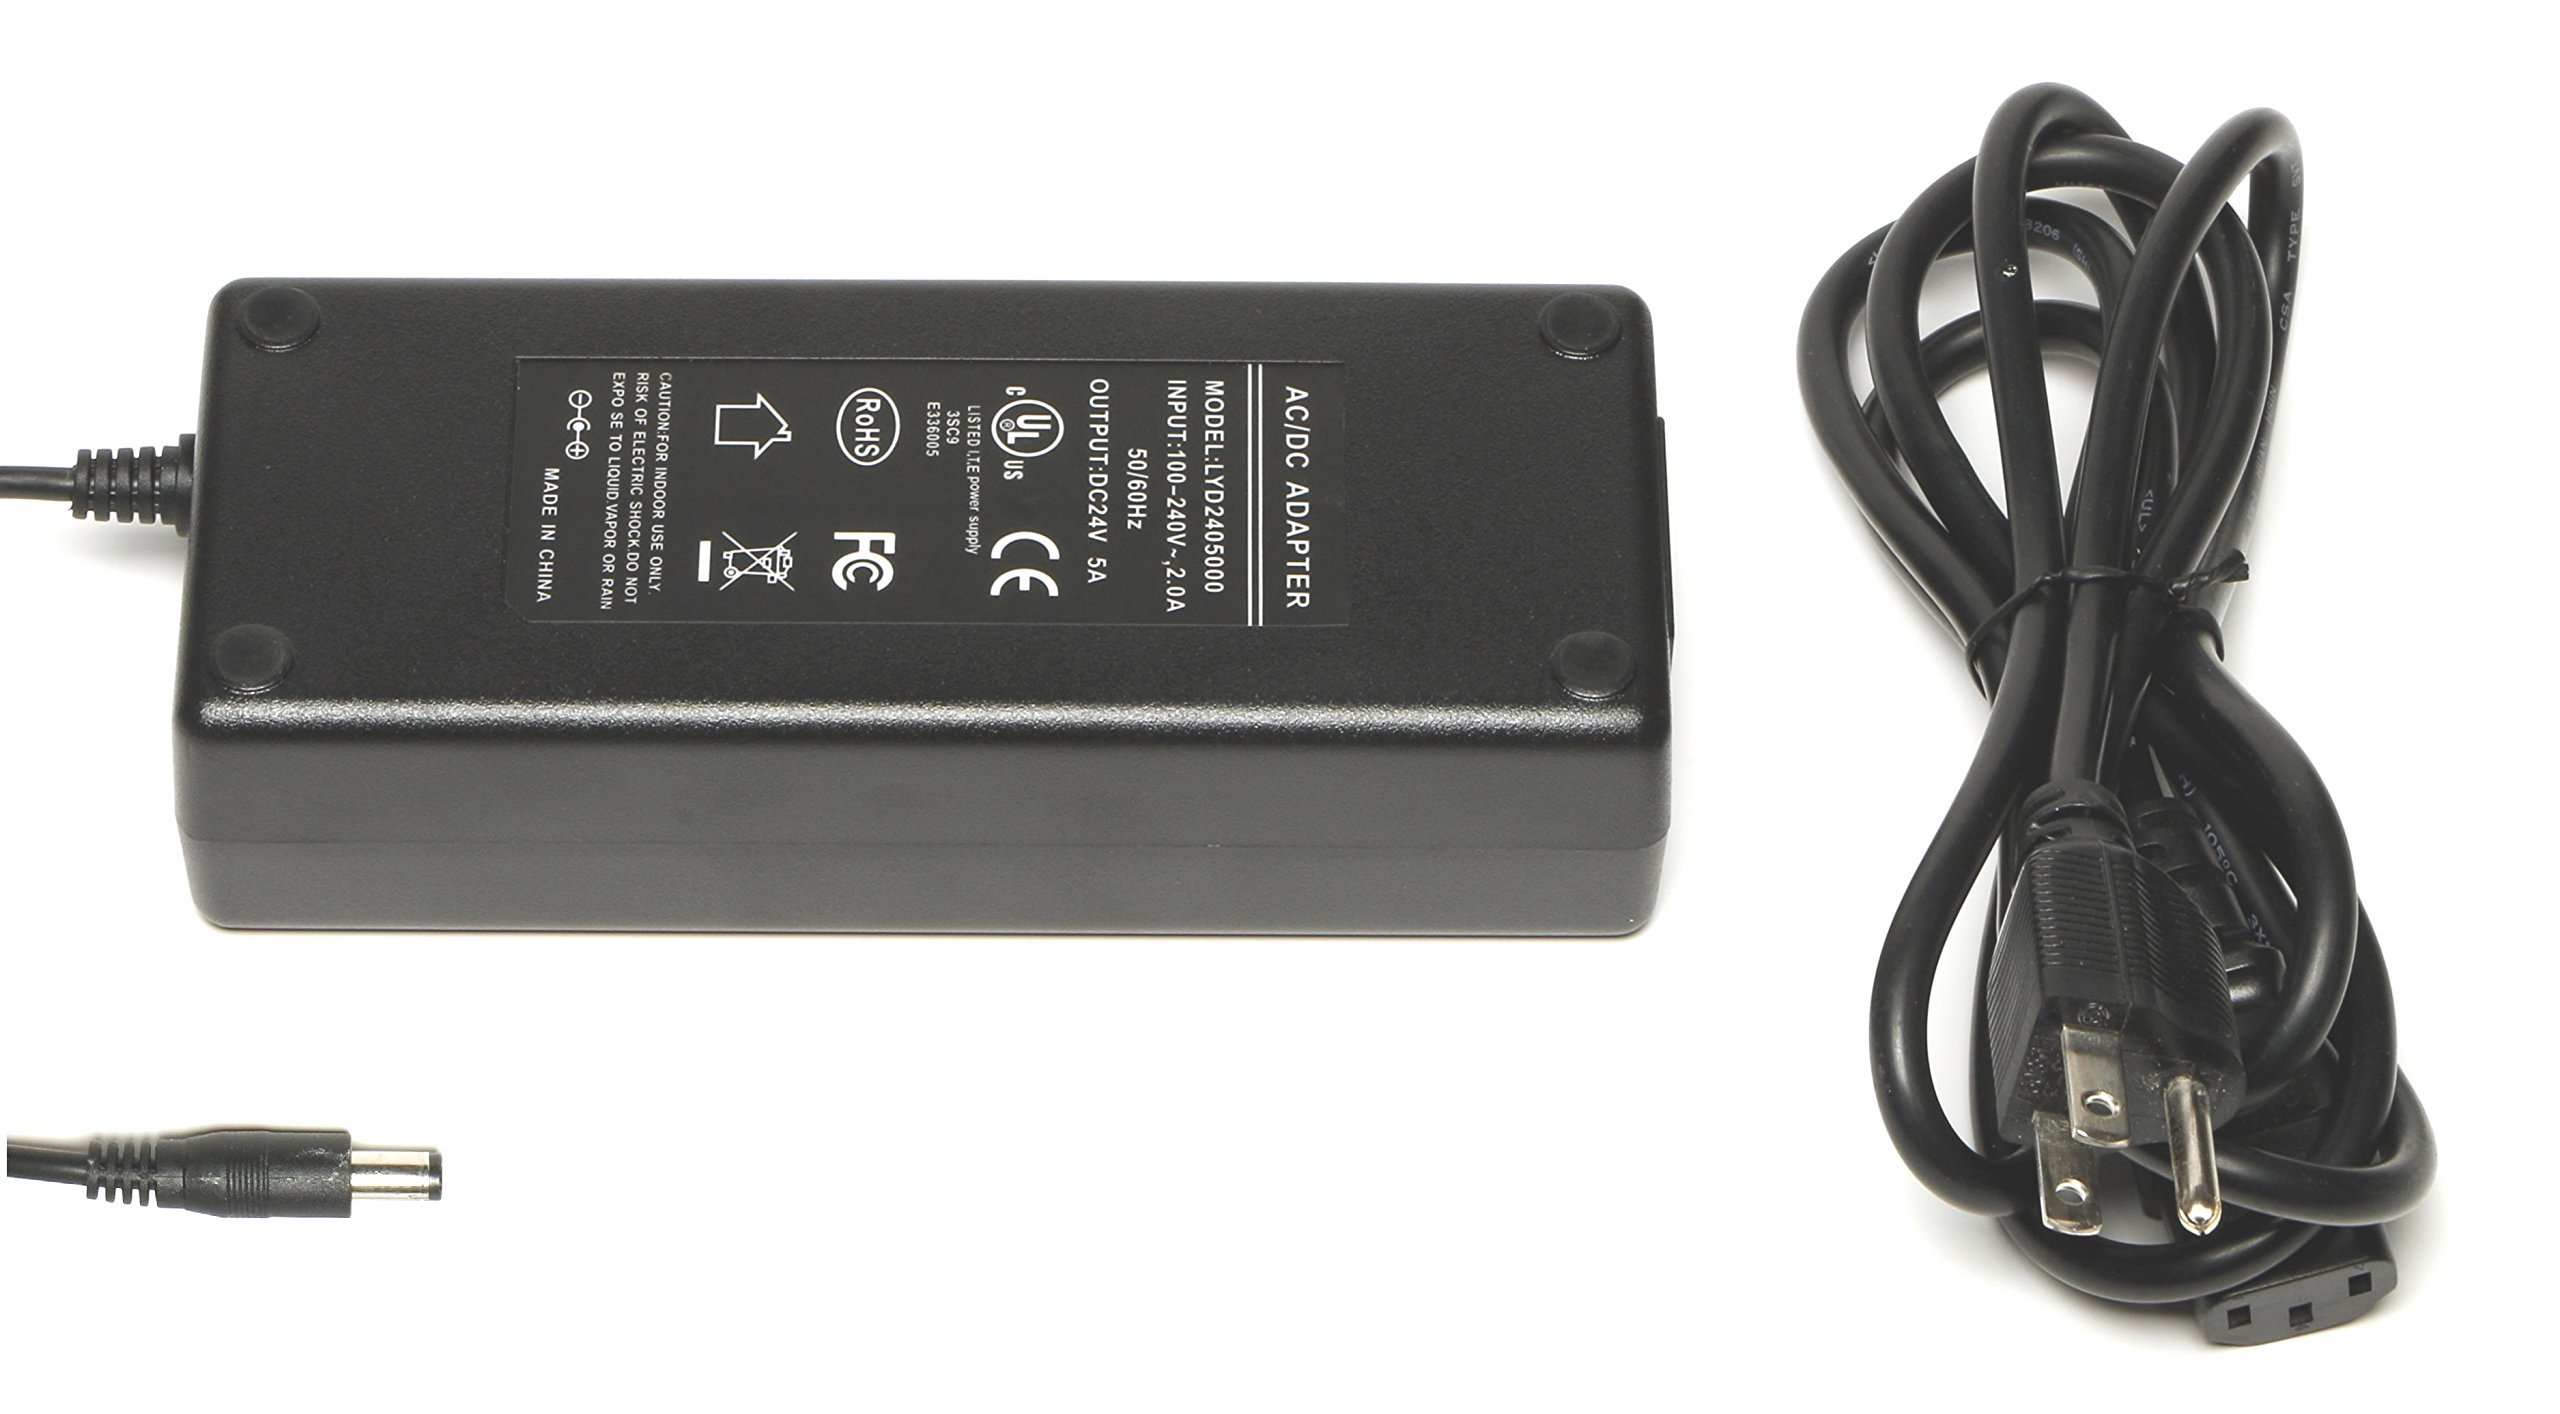 WS-PS-24v120w 24 volt 120 watt power supply for PoE injectors and other 24v projects, 5 amps max, UL, FCC, DoE approved, 2.1mm connector